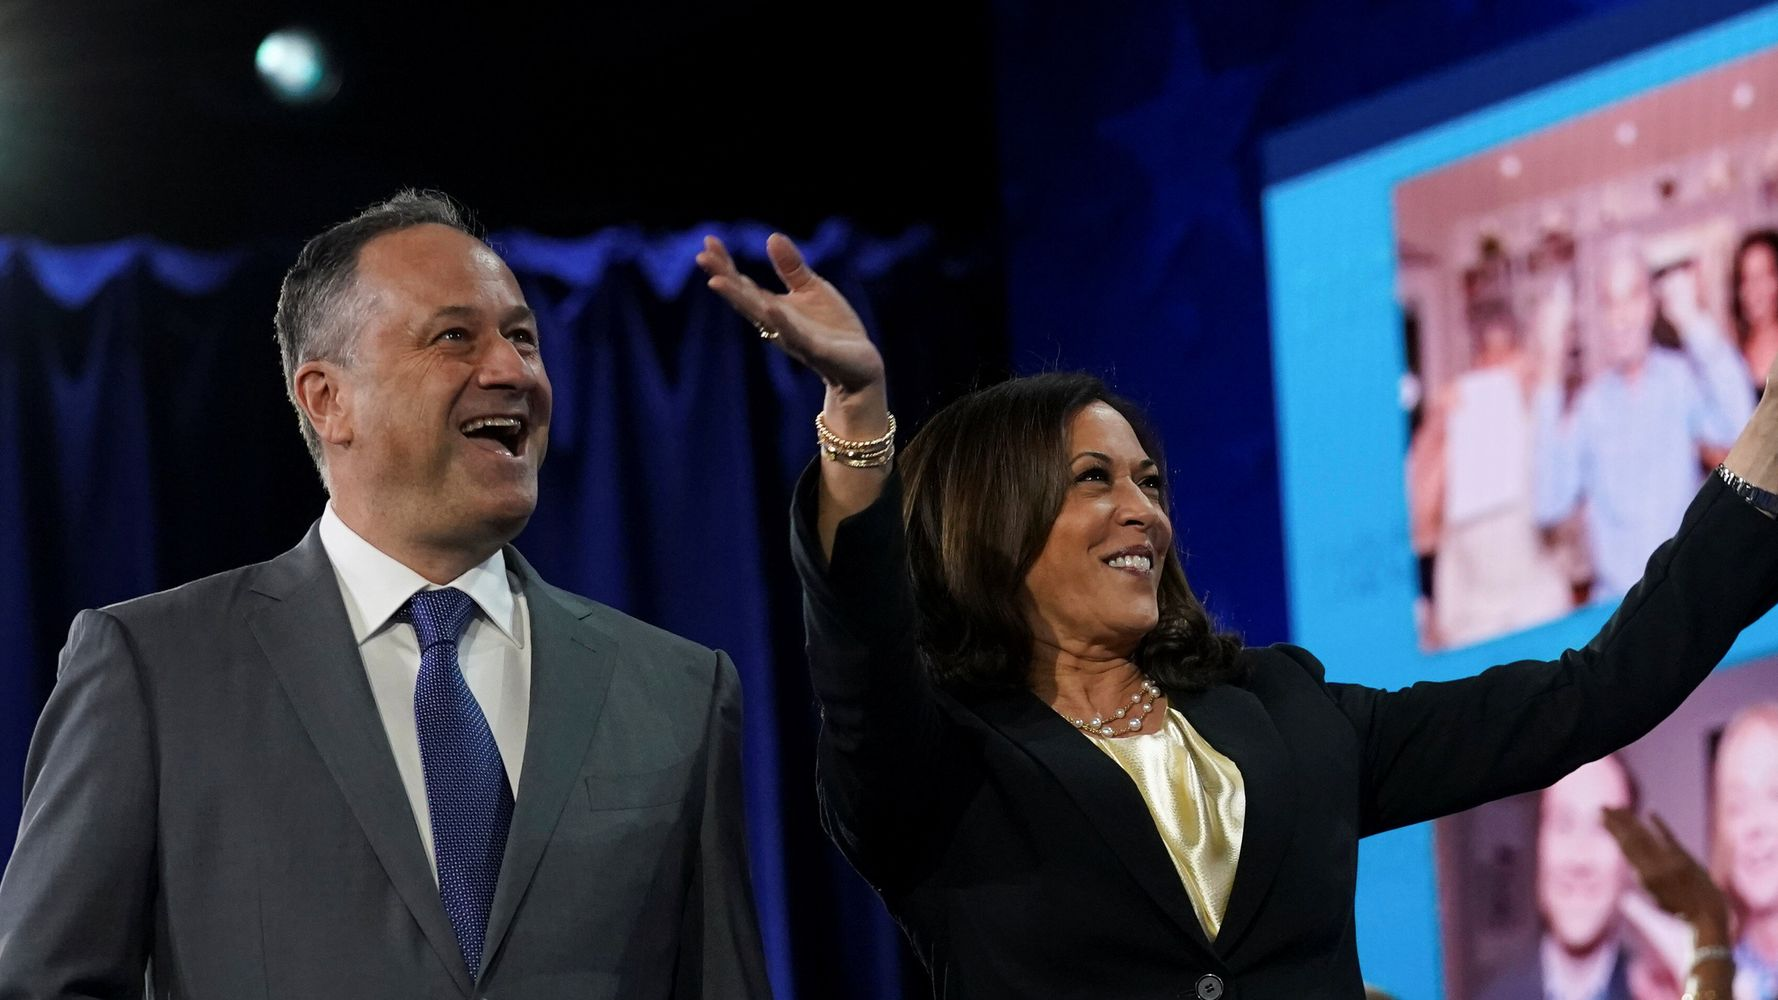 Douglas Emhoff, Kamala Harris' Husband, Leaves Job At Law Firm